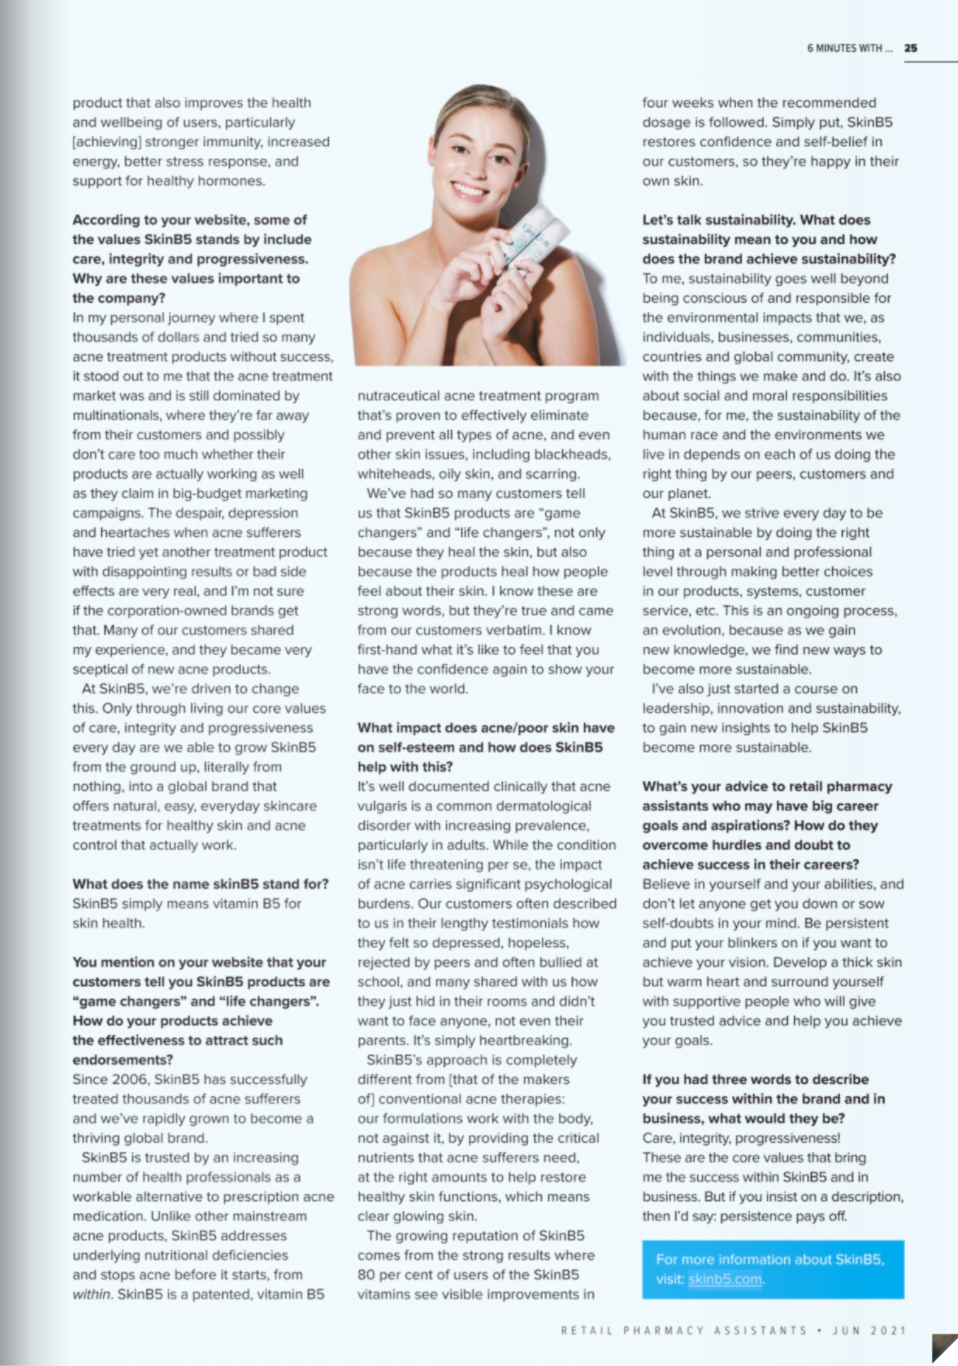 Retail Pharmacy Assistants Magazine Interview with Judy Cheung-Wood SkinB5